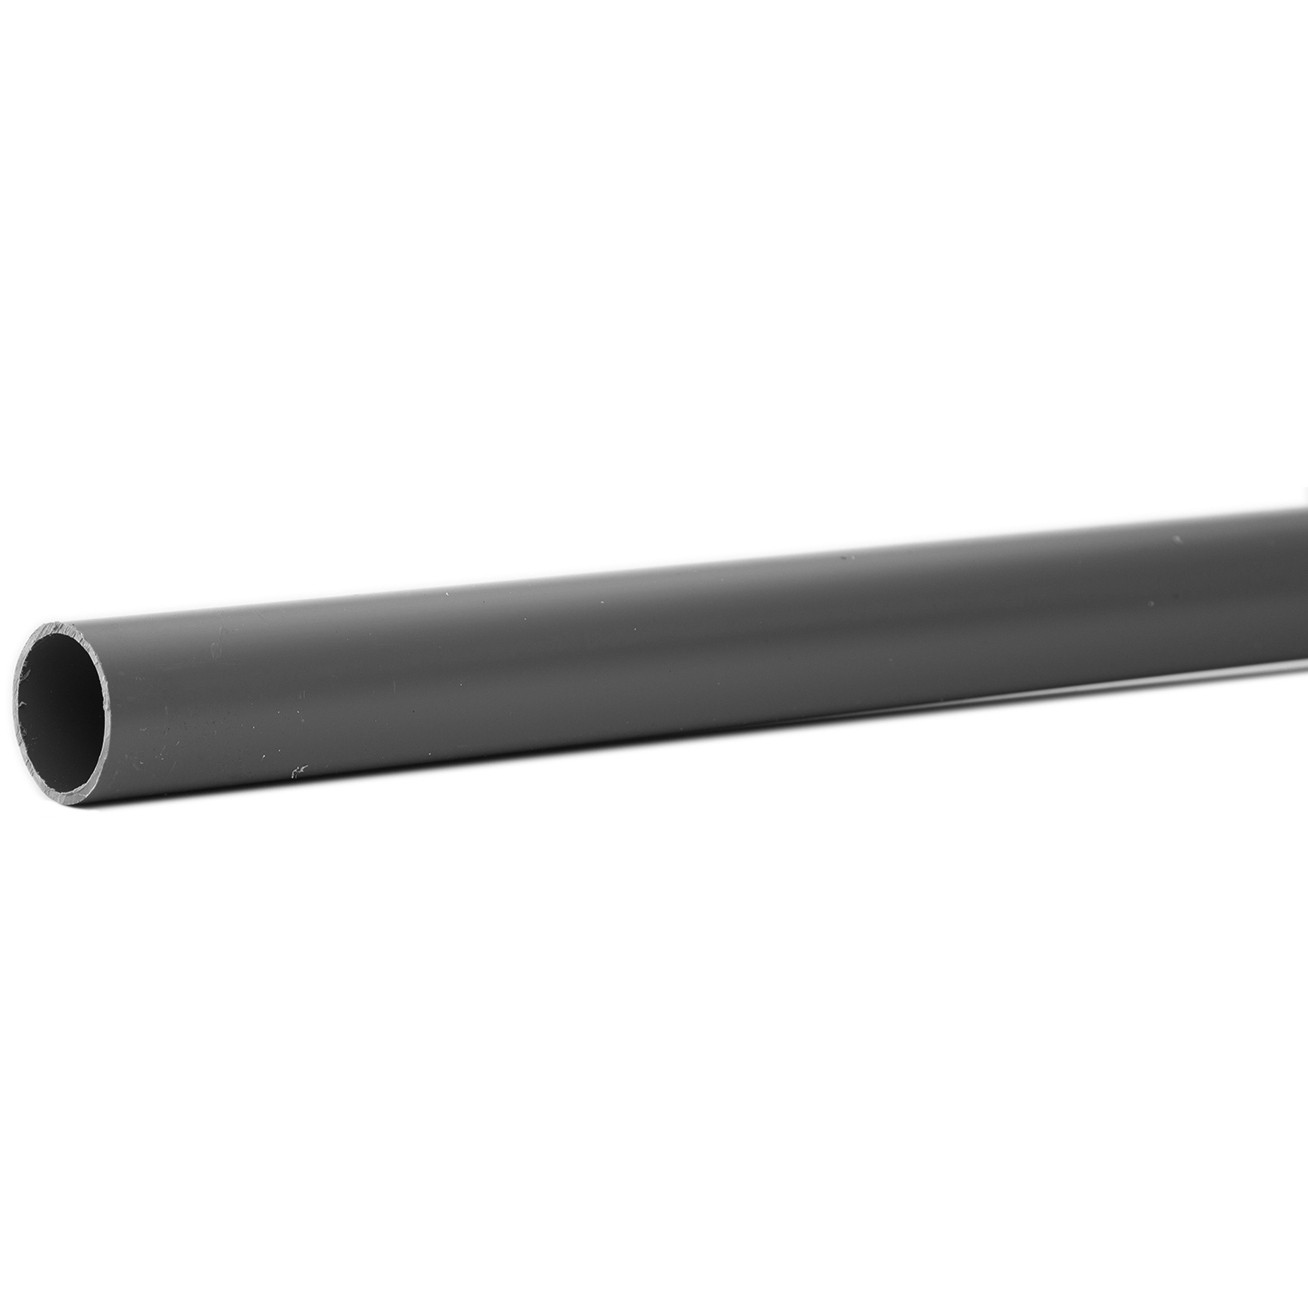 Polypipe 32mm Solvent Weld Waste Pipe - Grey, 1.5 metre